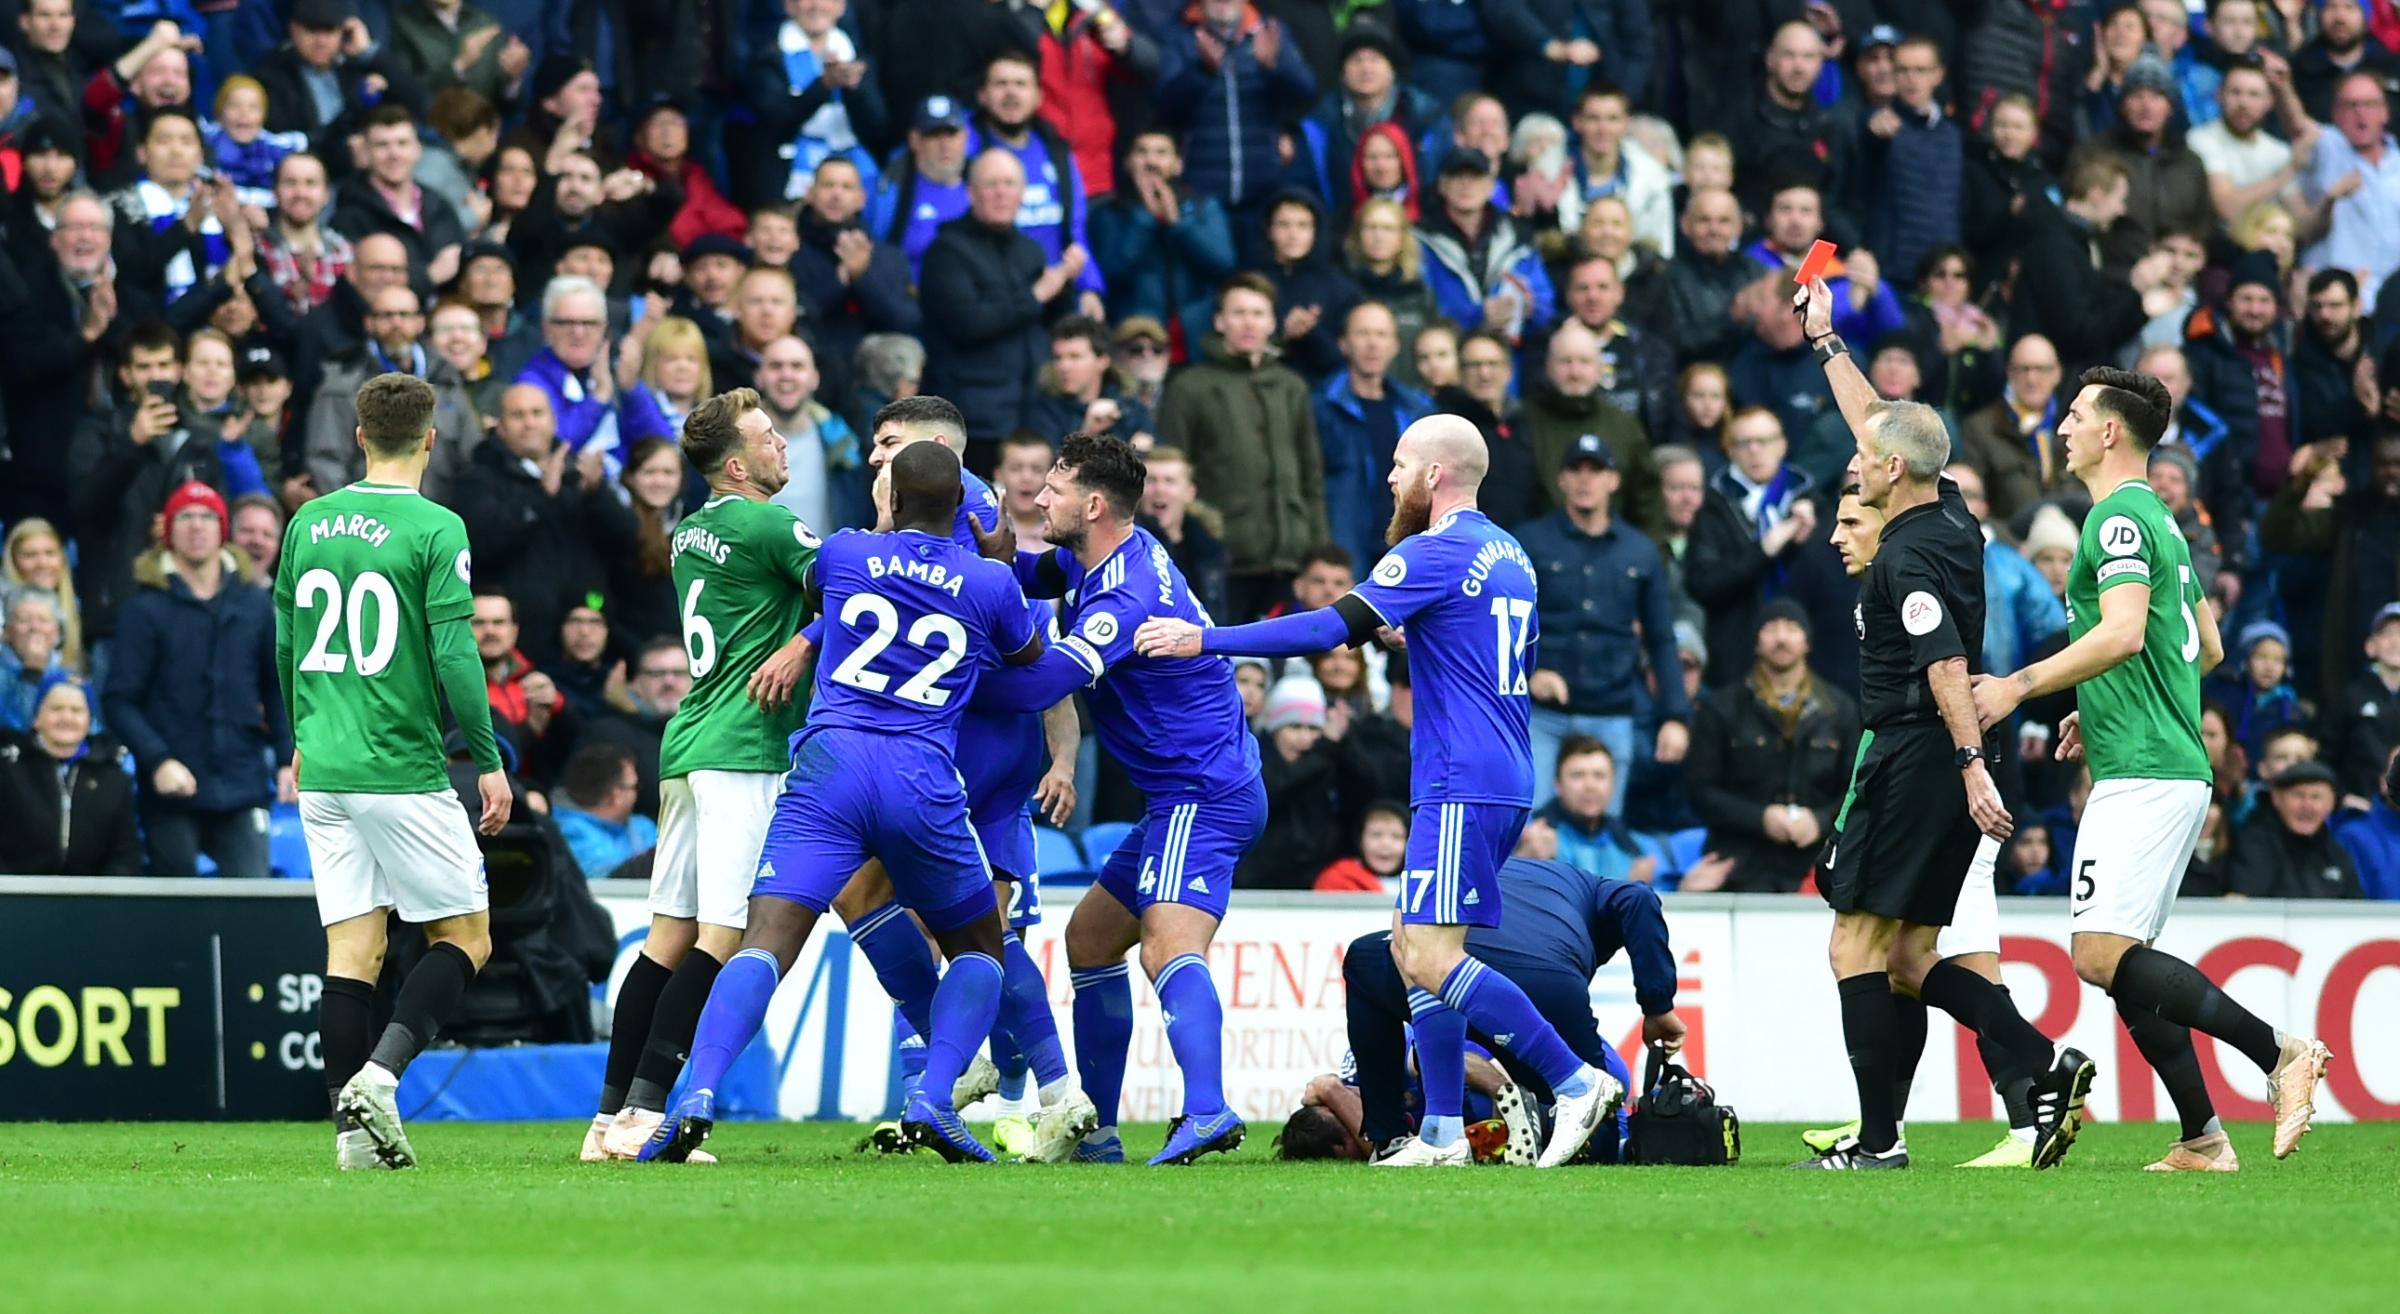 Seagulls hit by late goal - after Stephens sent off. How Albion lost 2-1 at Cardiff City